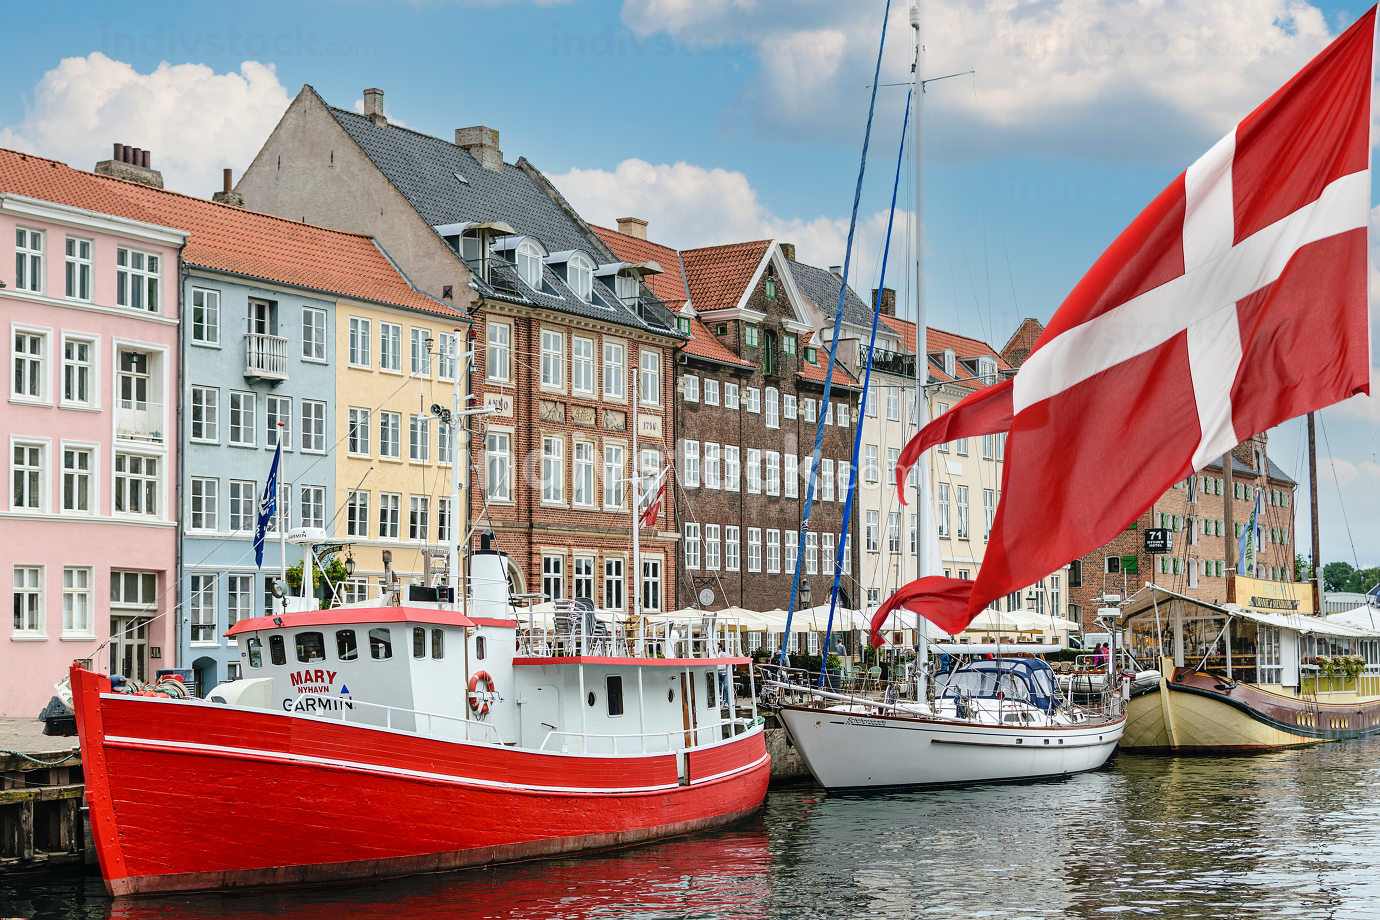 Nyhavn a 17th century harbour in Copenhagen with typical colorful houses and boats with national flag of Denmark on the first ground